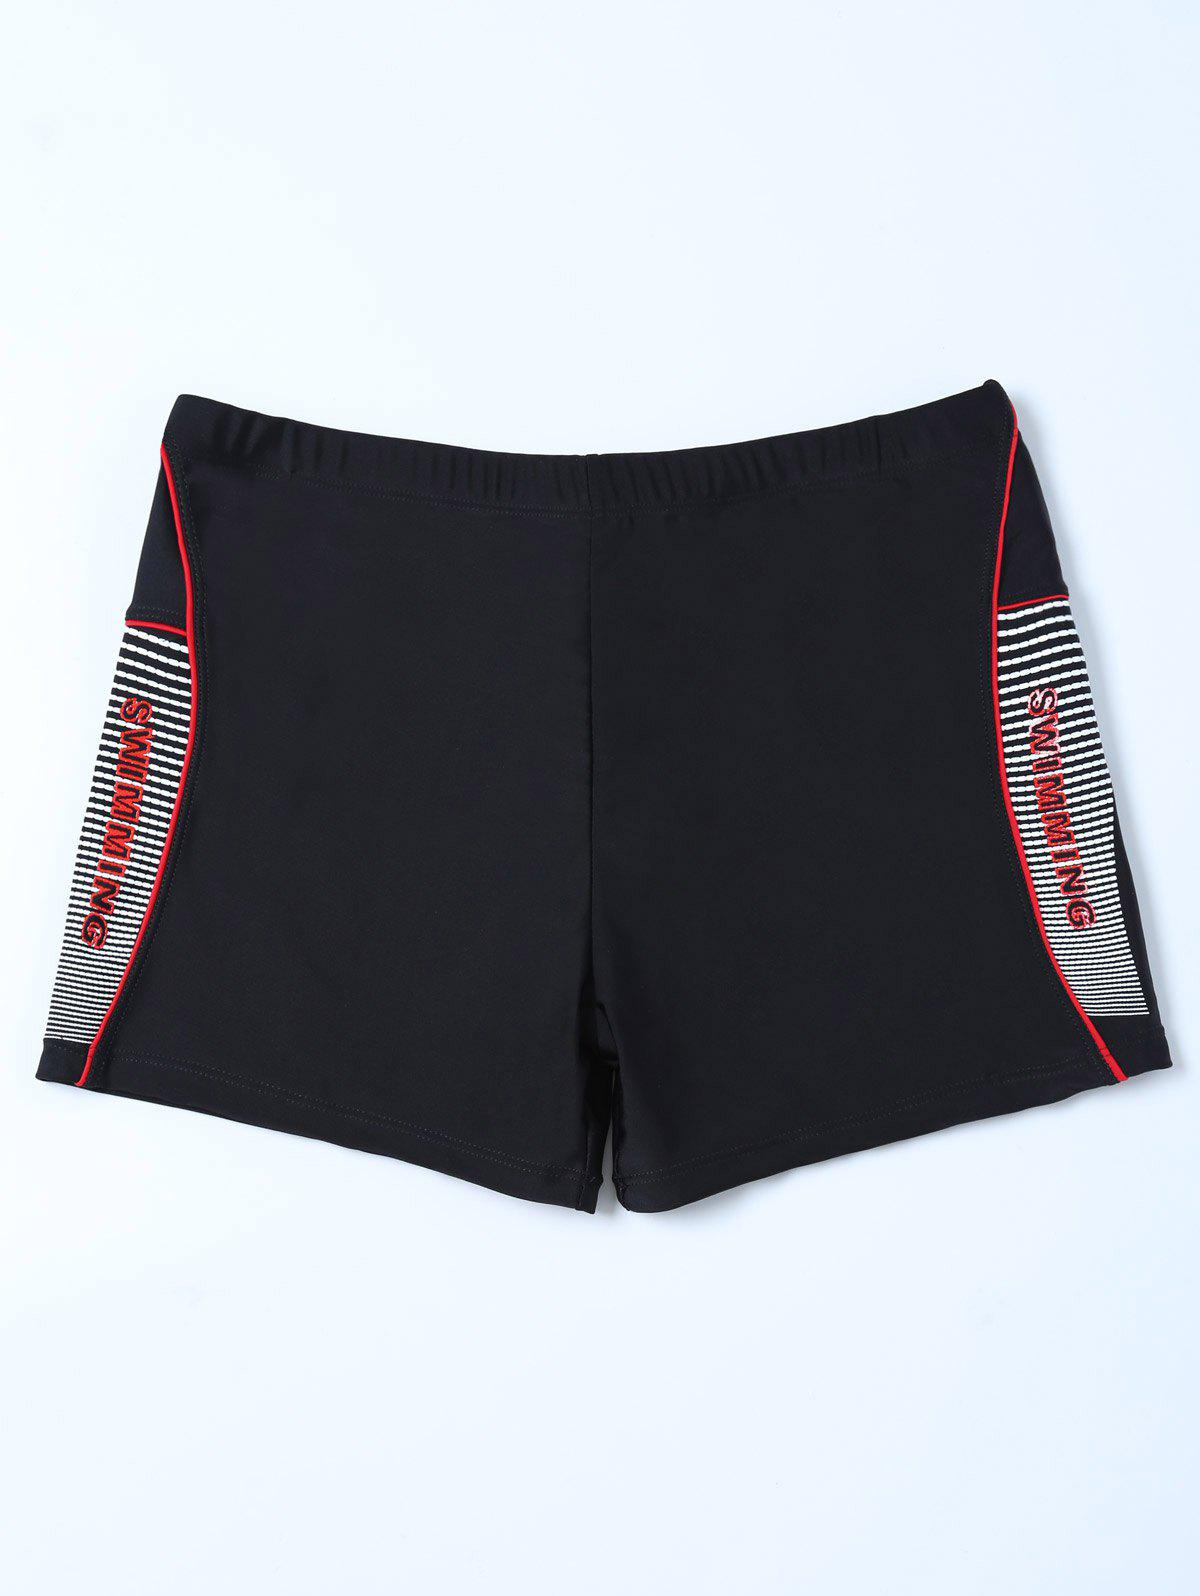 Graphic Contrast Striped Swim Bottom Boyshorts - BLACK 2XL